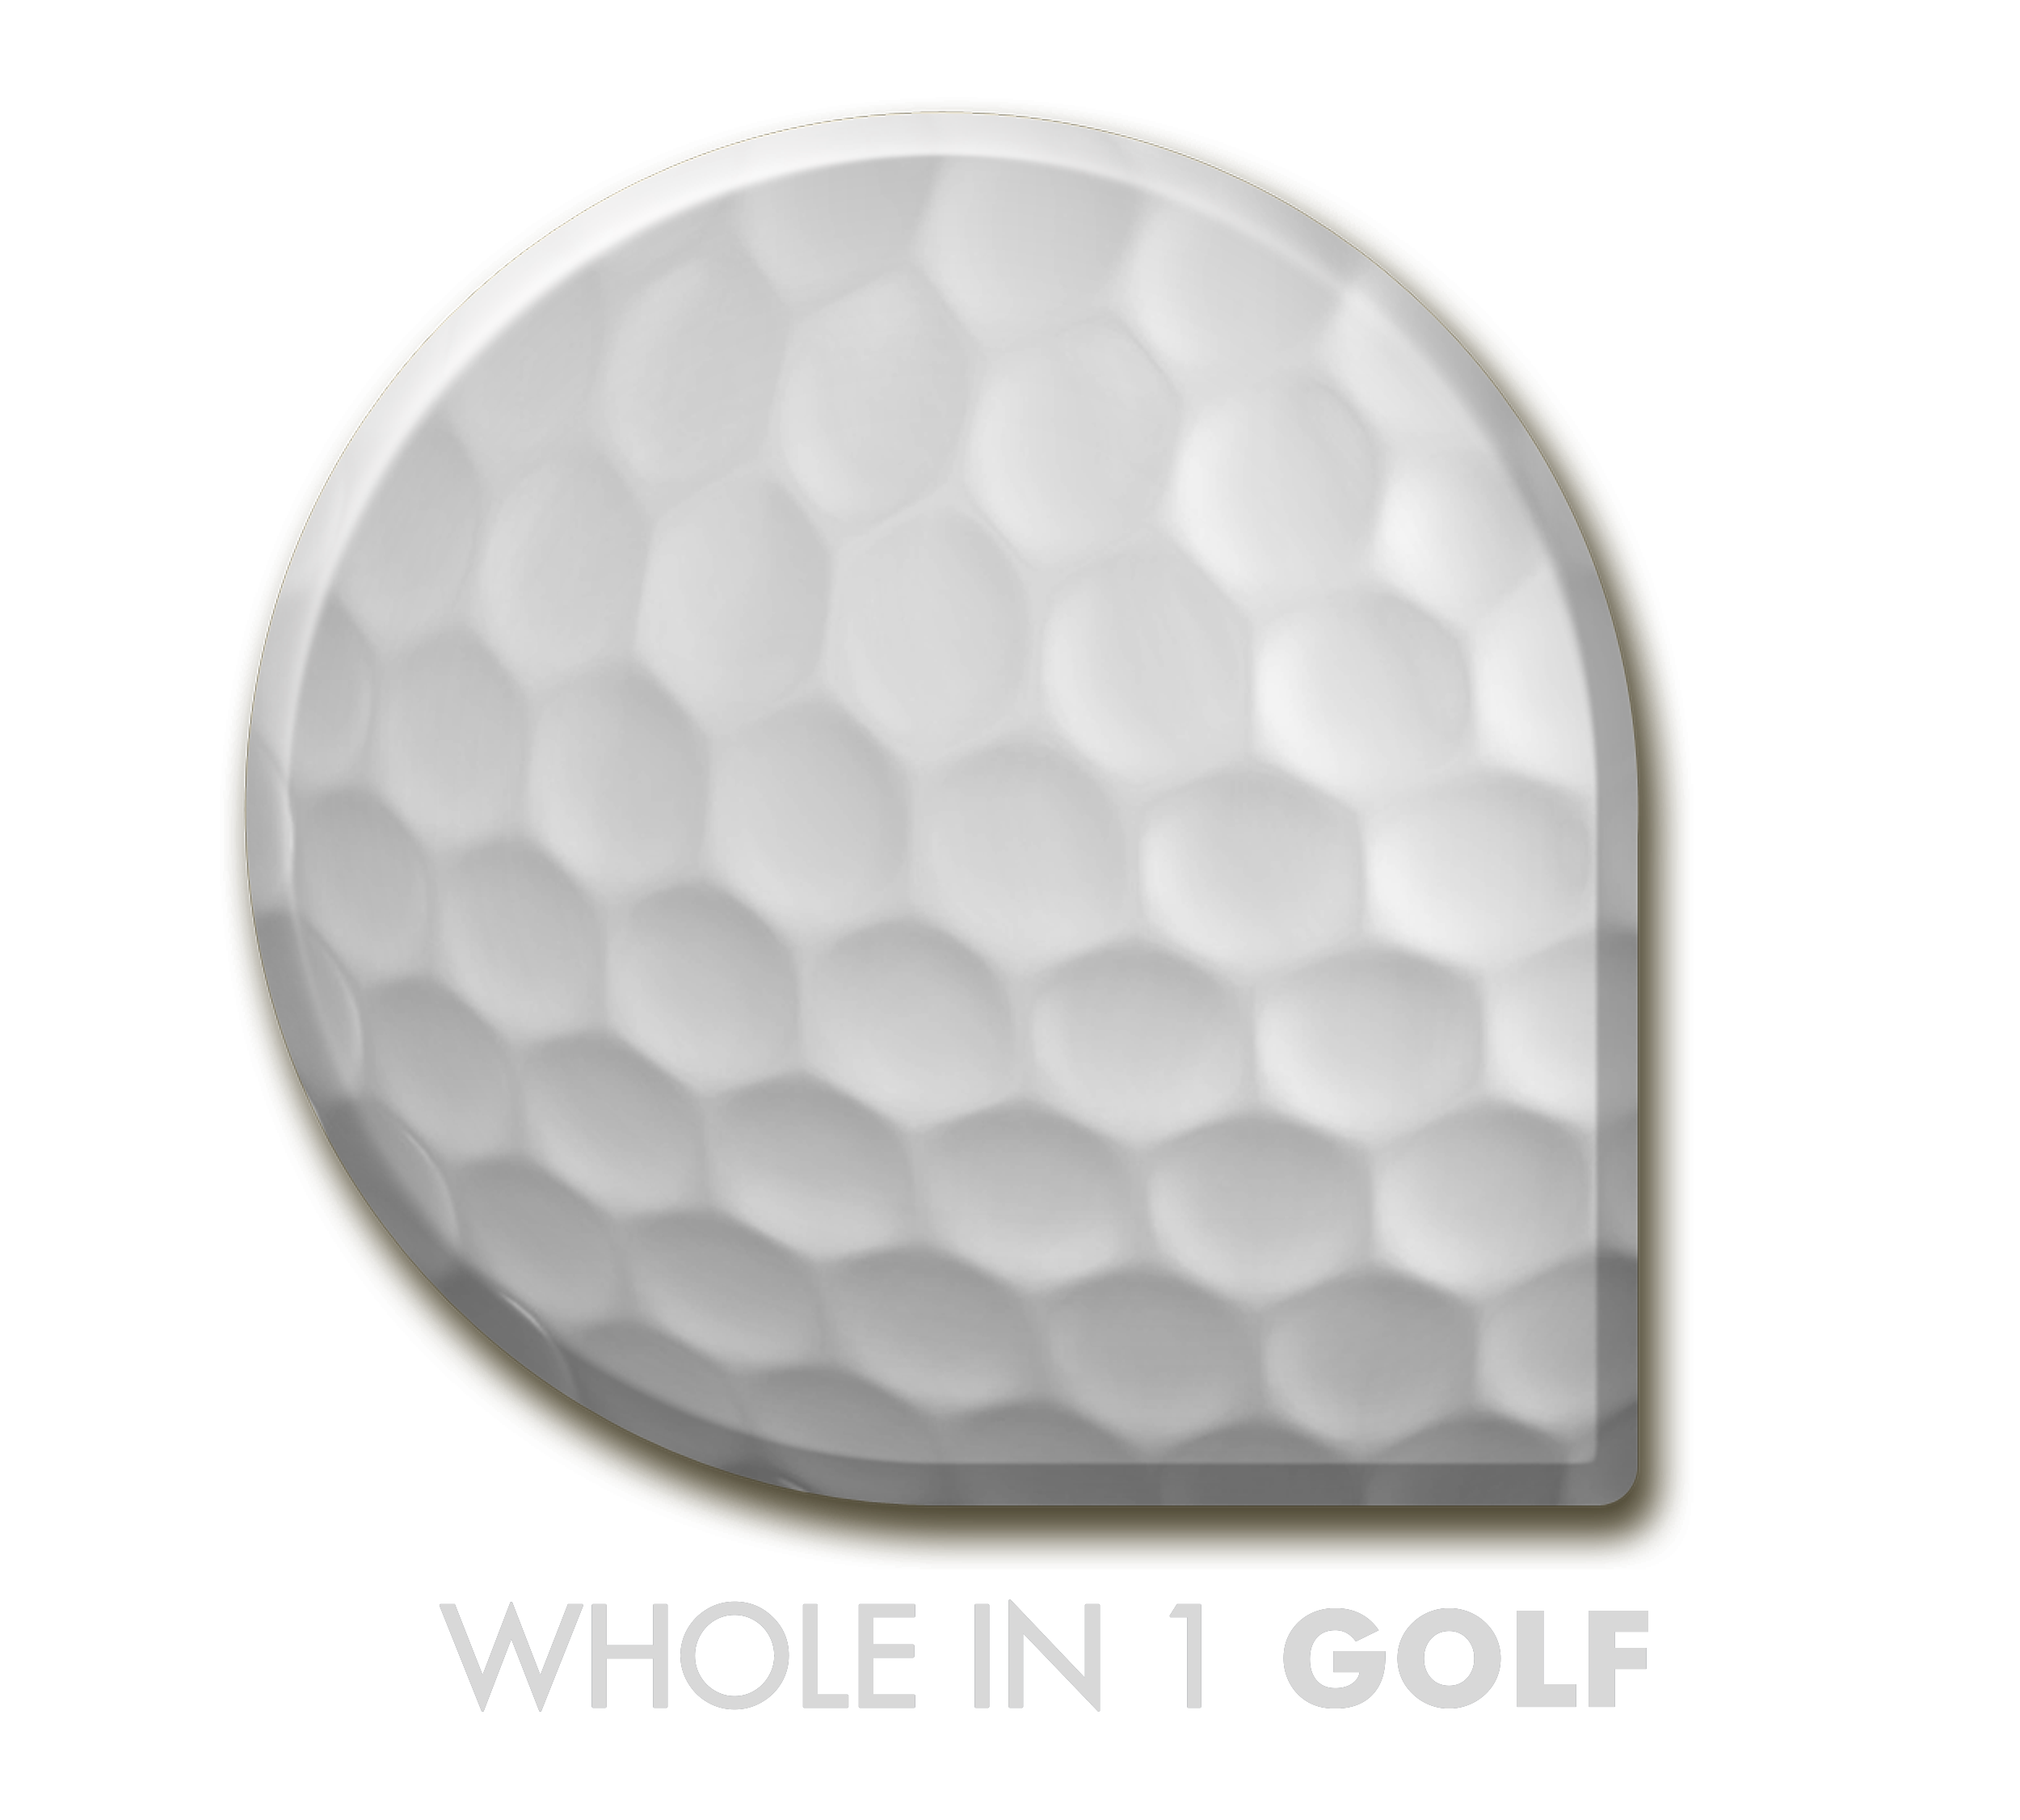 Whole In 1 Golf